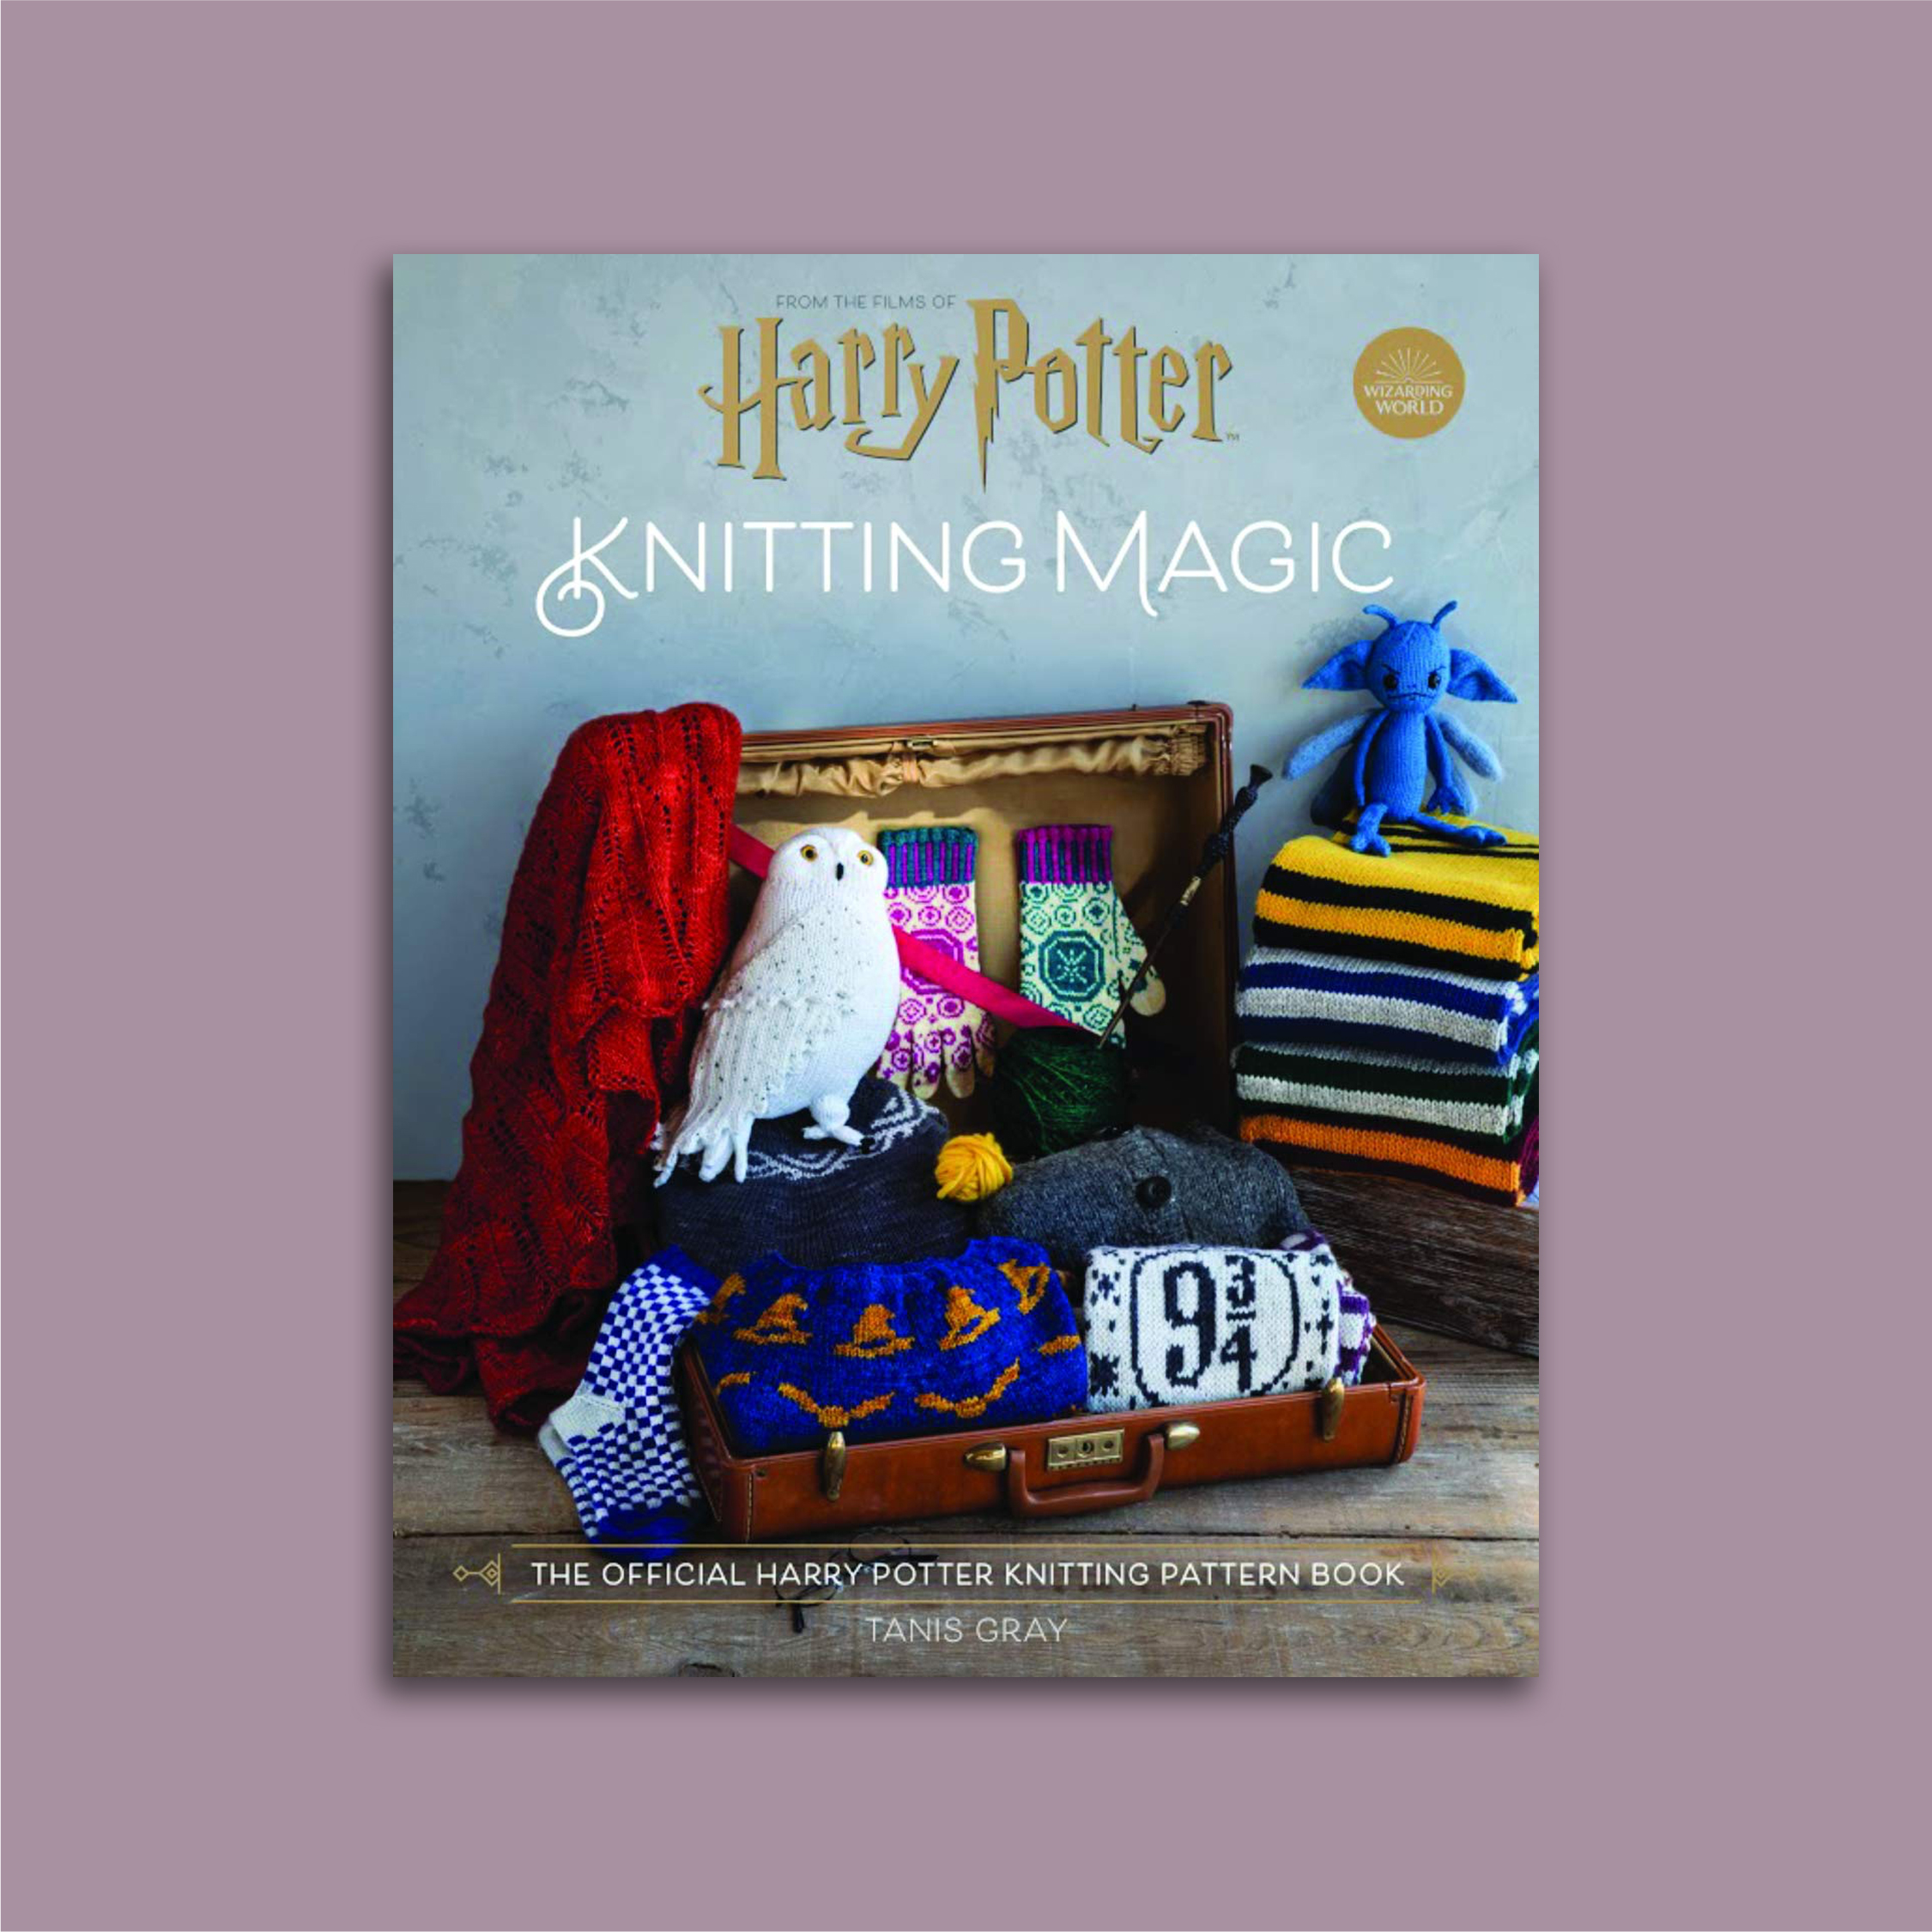 Harry Potter Crafting Book